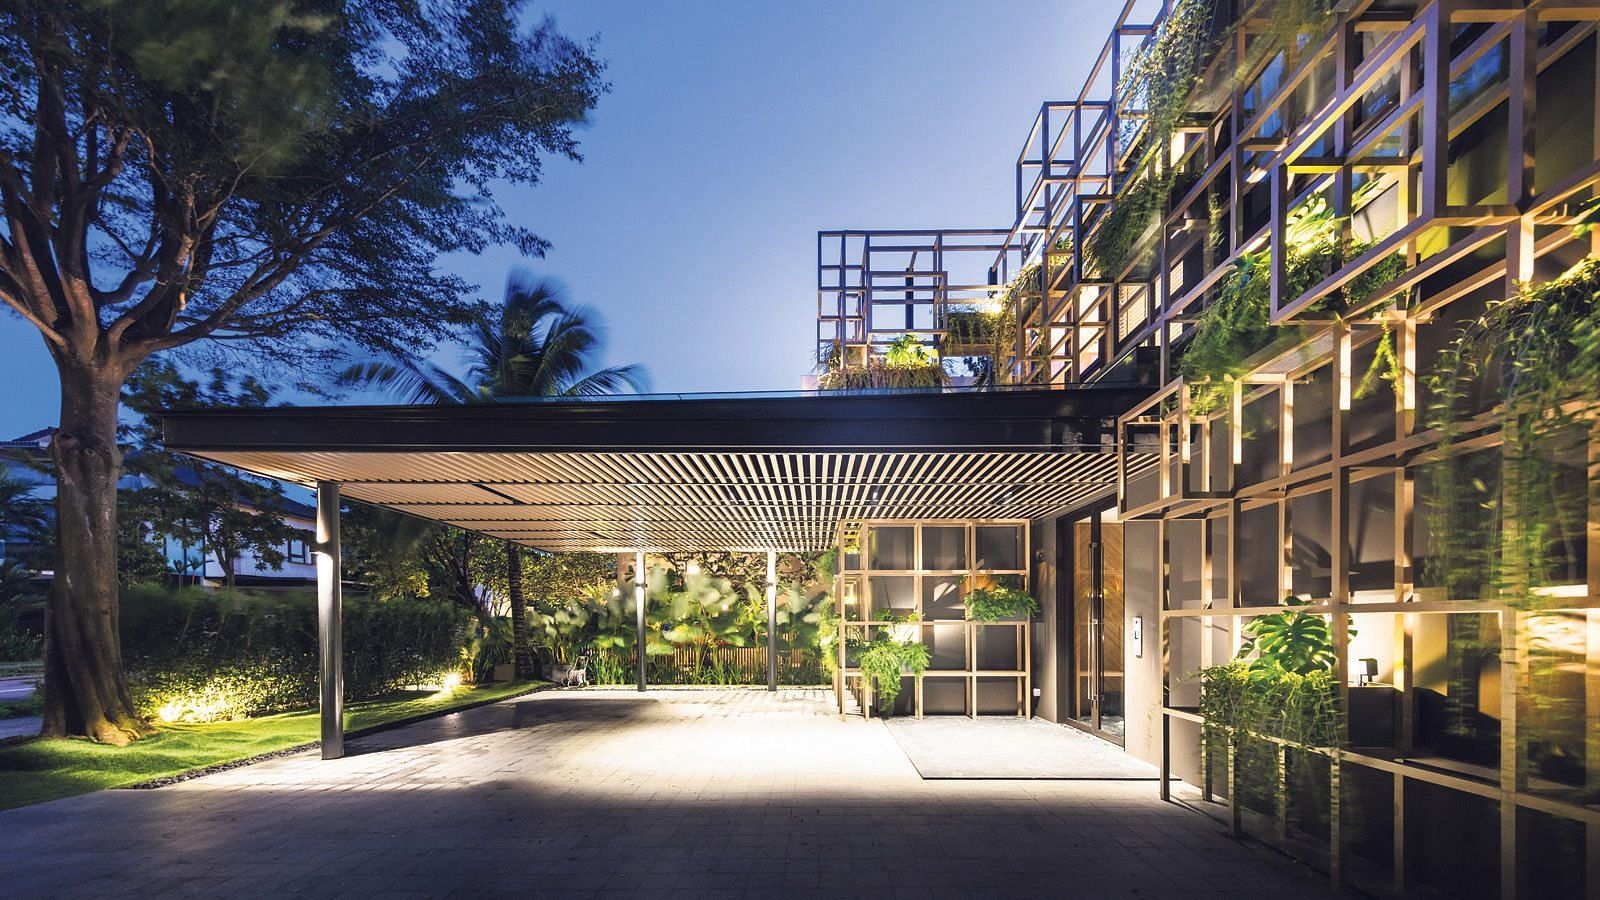 House Tour: Two-storey Sentosa Cove house with a grid-like facade dotted with tropical plants  title=